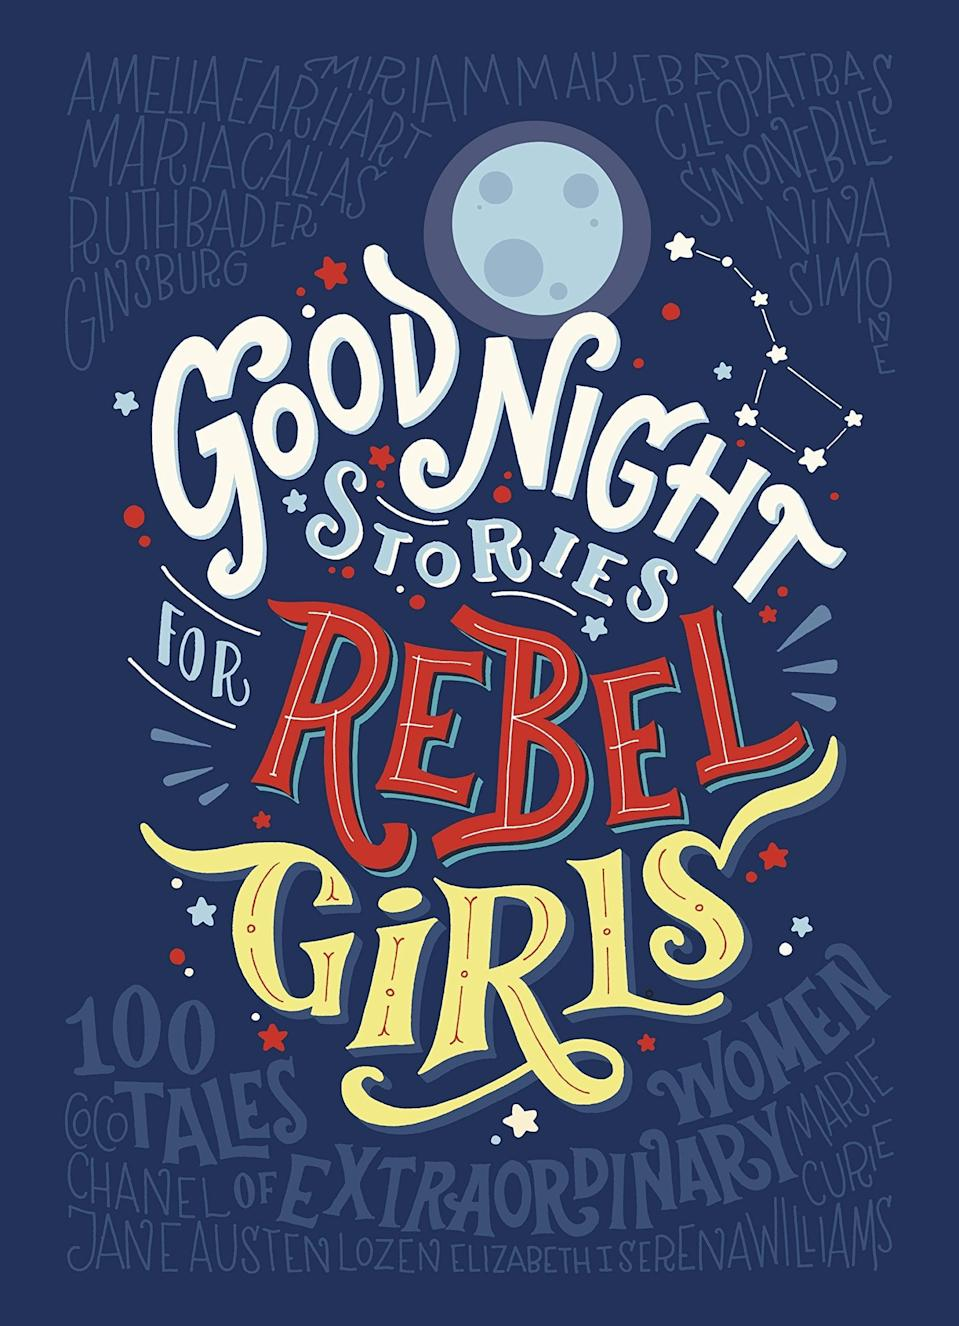 """<p>This """"most funded book in crowd funding history,"""" <strong><span>Good Night Stories For Rebel Girls</span></strong> ($25) features short, page-long bios on 100 smart, successful, gritty women from around the world, including Freda Kahlo, Jane Goodall, and Cleopatra. The follow-up <strong><span>Goodnight Stories For Rebel Girls 2</span></strong> ($21) features 100 more bedtime stories about extraordinary women, including Nefertiti and Beyoncé.</p>"""